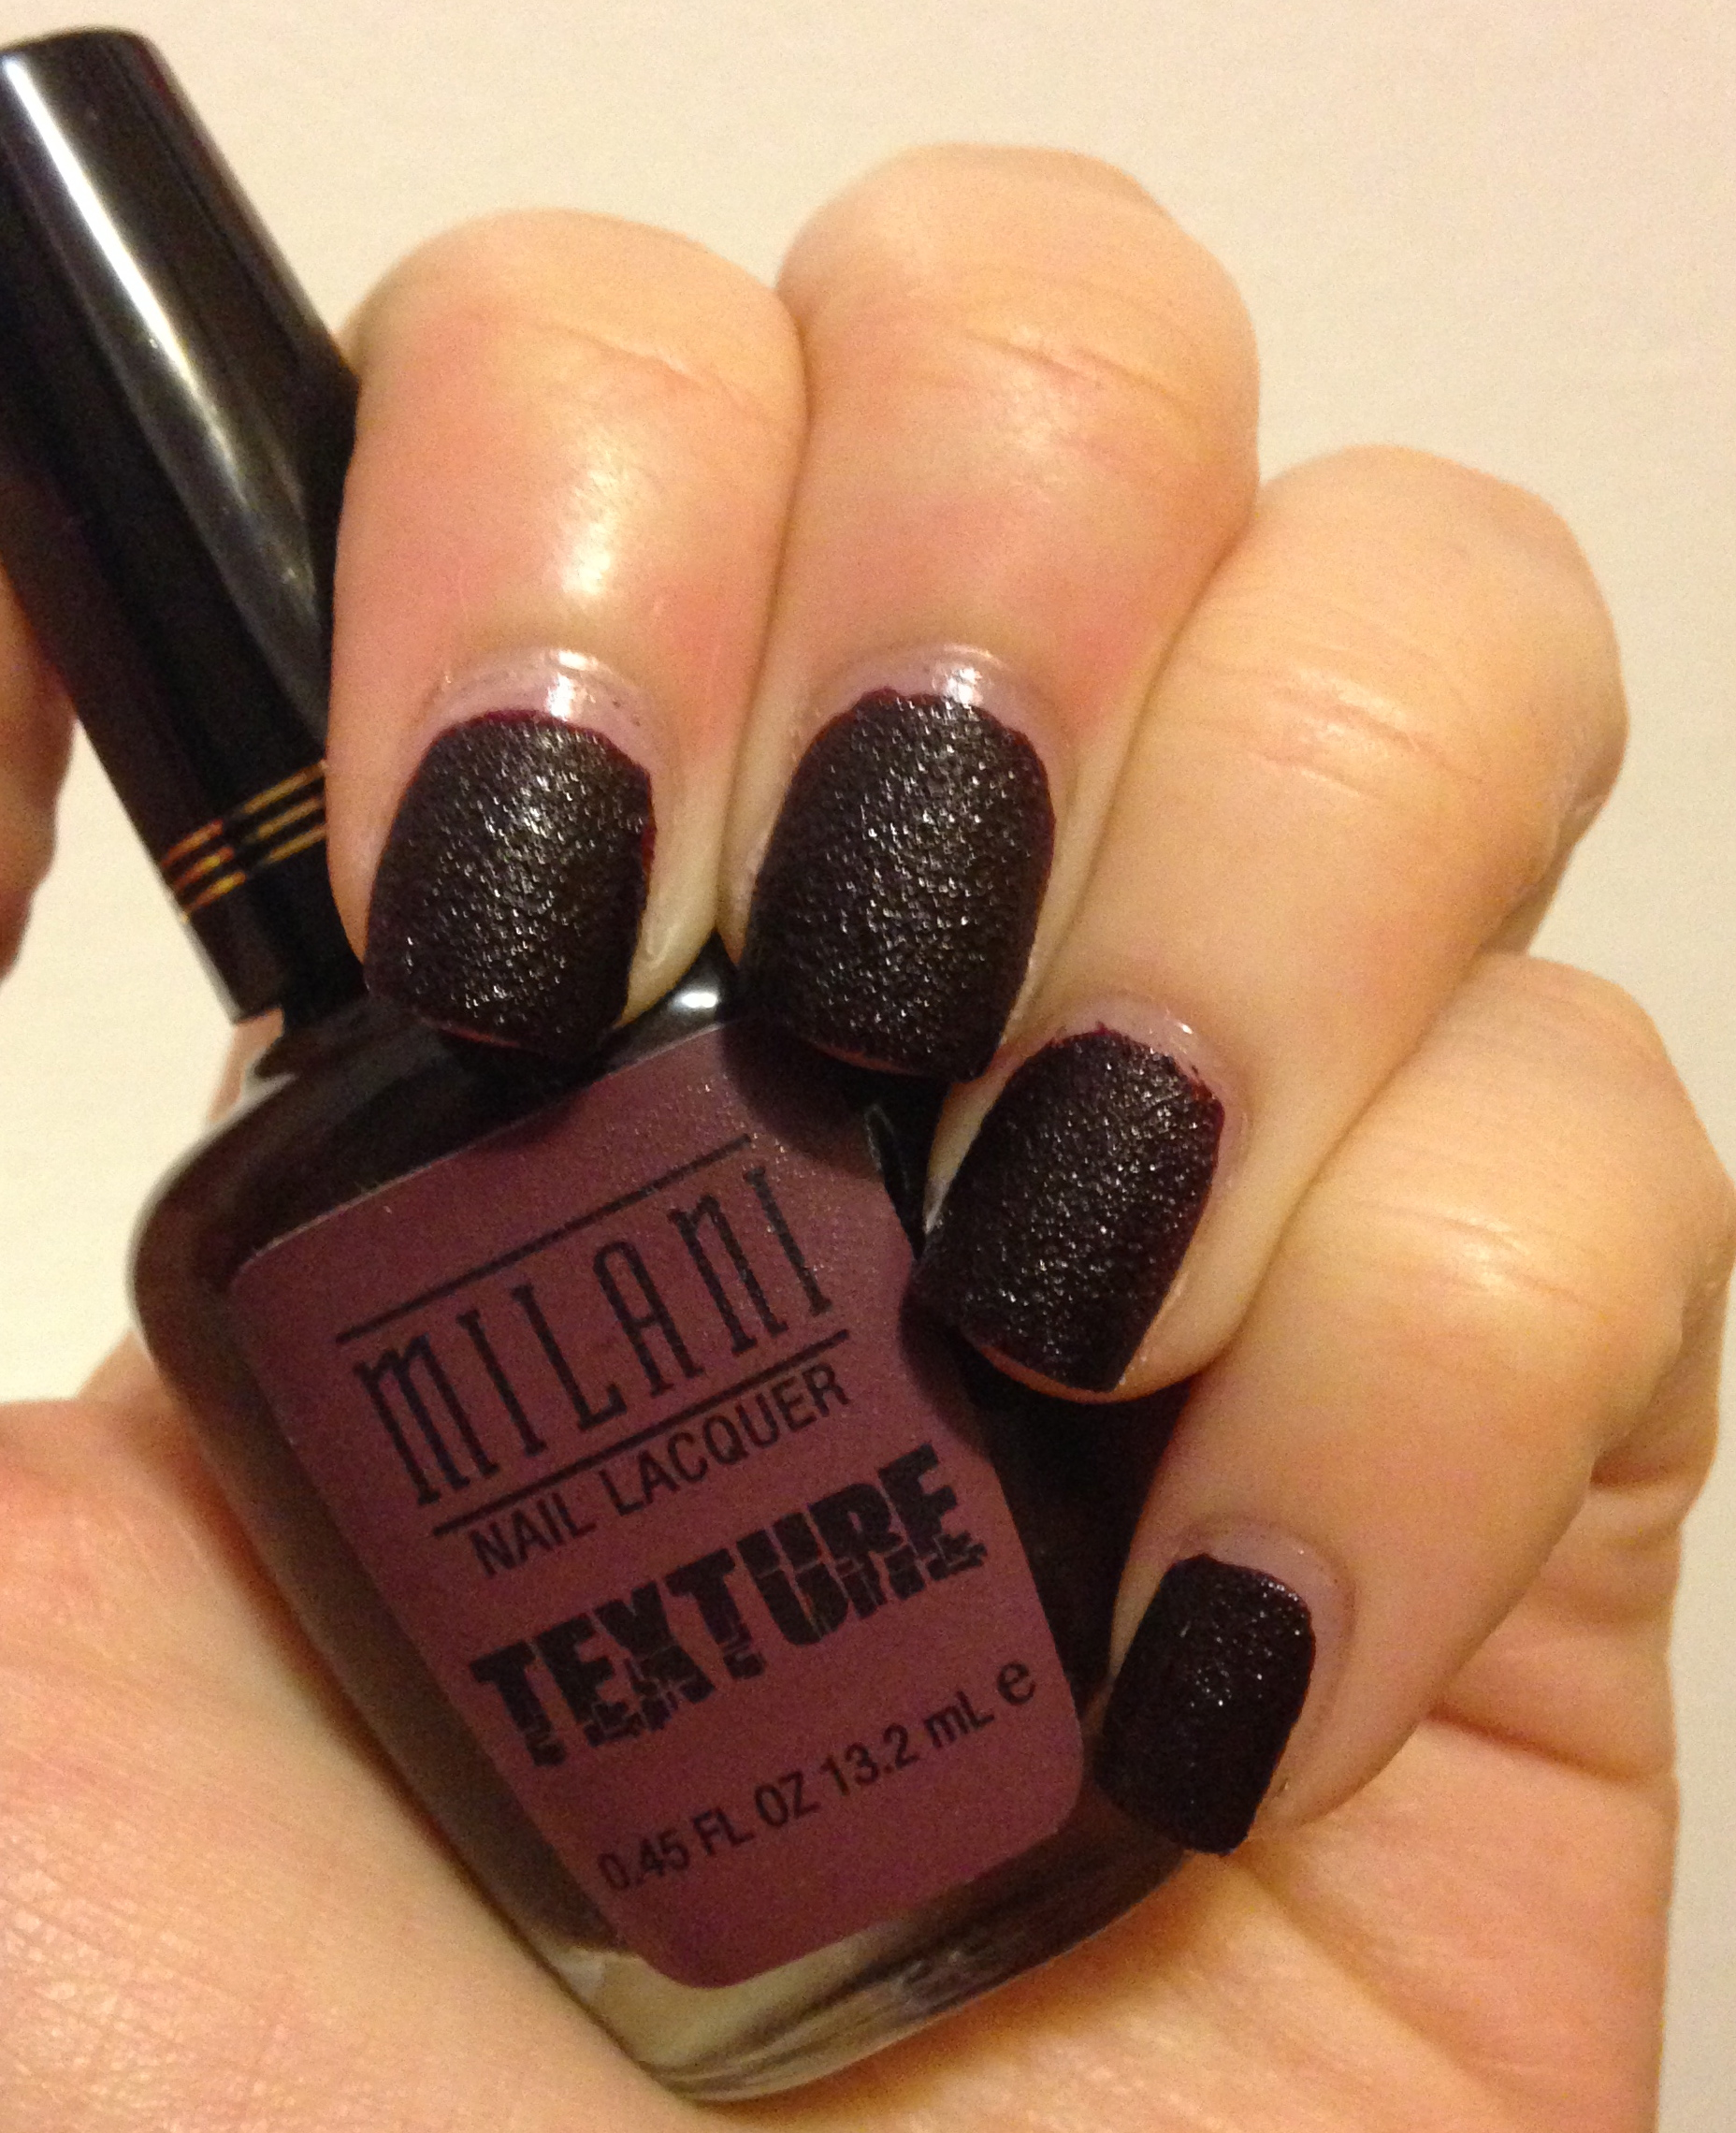 Milani Cosmetics Limited Edition Textured Creams for Fall ...